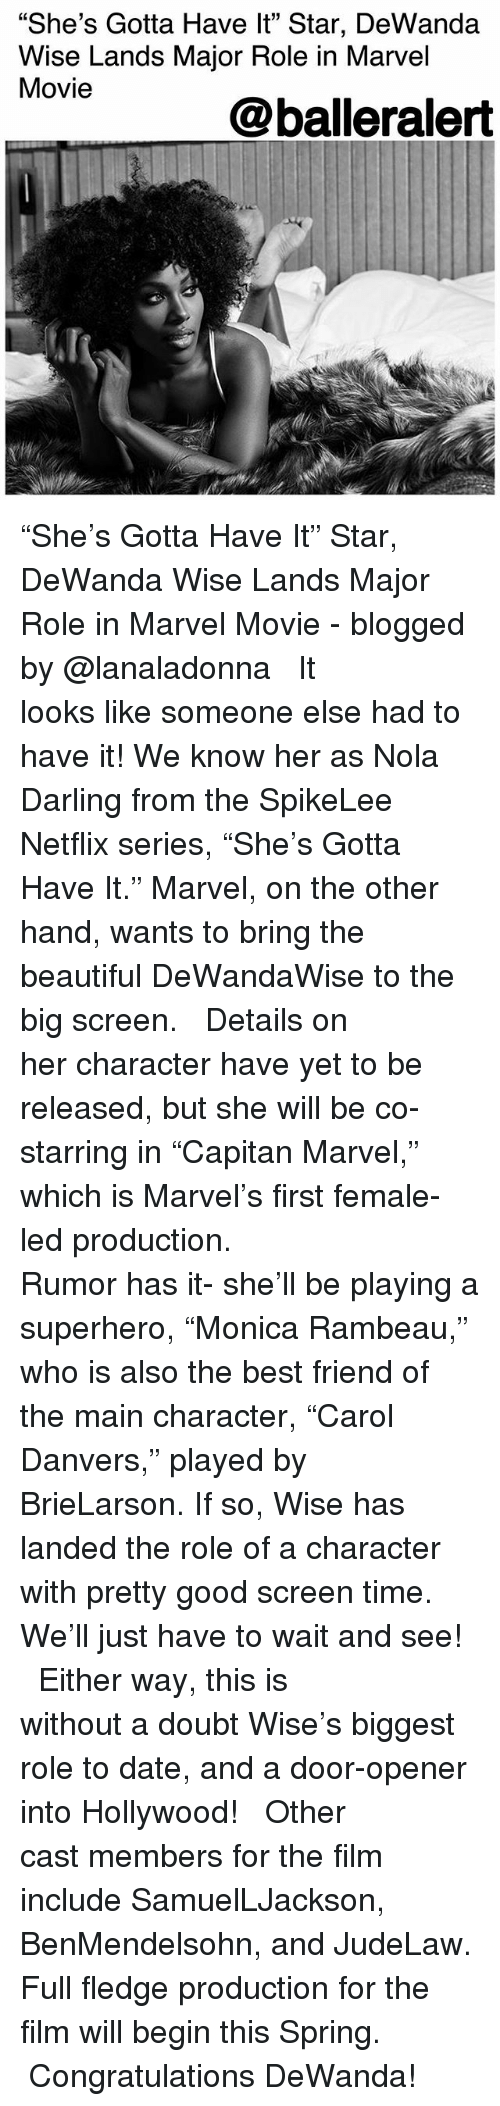 """big screen: """"She's Gotta Have lt"""" Star, DeWanda  Wise Lands Major Role in Marvel  Movie  05  @balleralert """"She's Gotta Have It"""" Star, DeWanda Wise Lands Major Role in Marvel Movie - blogged by @lanaladonna ⠀⠀⠀⠀⠀⠀⠀ ⠀⠀⠀⠀⠀⠀⠀ It looks like someone else had to have it! We know her as Nola Darling from the SpikeLee Netflix series, """"She's Gotta Have It."""" Marvel, on the other hand, wants to bring the beautiful DeWandaWise to the big screen. ⠀⠀⠀⠀⠀⠀⠀ ⠀⠀⠀⠀⠀⠀⠀ Details on her character have yet to be released, but she will be co-starring in """"Capitan Marvel,"""" which is Marvel's first female-led production. ⠀⠀⠀⠀⠀⠀⠀ ⠀⠀⠀⠀⠀⠀⠀ Rumor has it- she'll be playing a superhero, """"Monica Rambeau,"""" who is also the best friend of the main character, """"Carol Danvers,"""" played by BrieLarson. If so, Wise has landed the role of a character with pretty good screen time. We'll just have to wait and see! ⠀⠀⠀⠀⠀⠀⠀ ⠀⠀⠀⠀⠀⠀⠀ Either way, this is without a doubt Wise's biggest role to date, and a door-opener into Hollywood! ⠀⠀⠀⠀⠀⠀⠀ ⠀⠀⠀⠀⠀⠀⠀ Other cast members for the film include SamuelLJackson, BenMendelsohn, and JudeLaw. Full fledge production for the film will begin this Spring. ⠀⠀⠀⠀⠀⠀⠀ ⠀⠀⠀⠀⠀⠀⠀ Congratulations DeWanda!"""